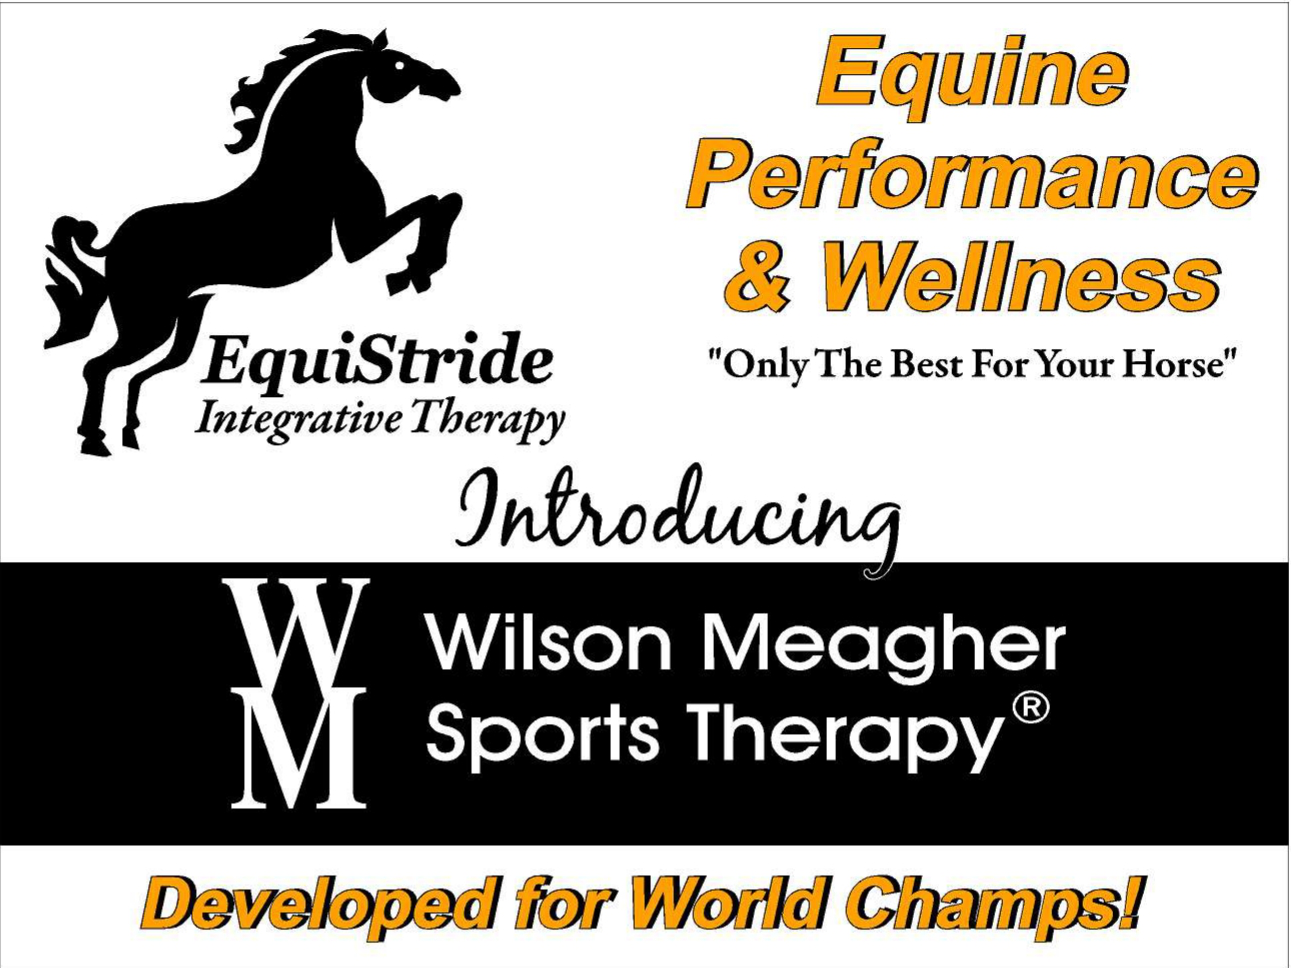 Equine Performance & Wellness